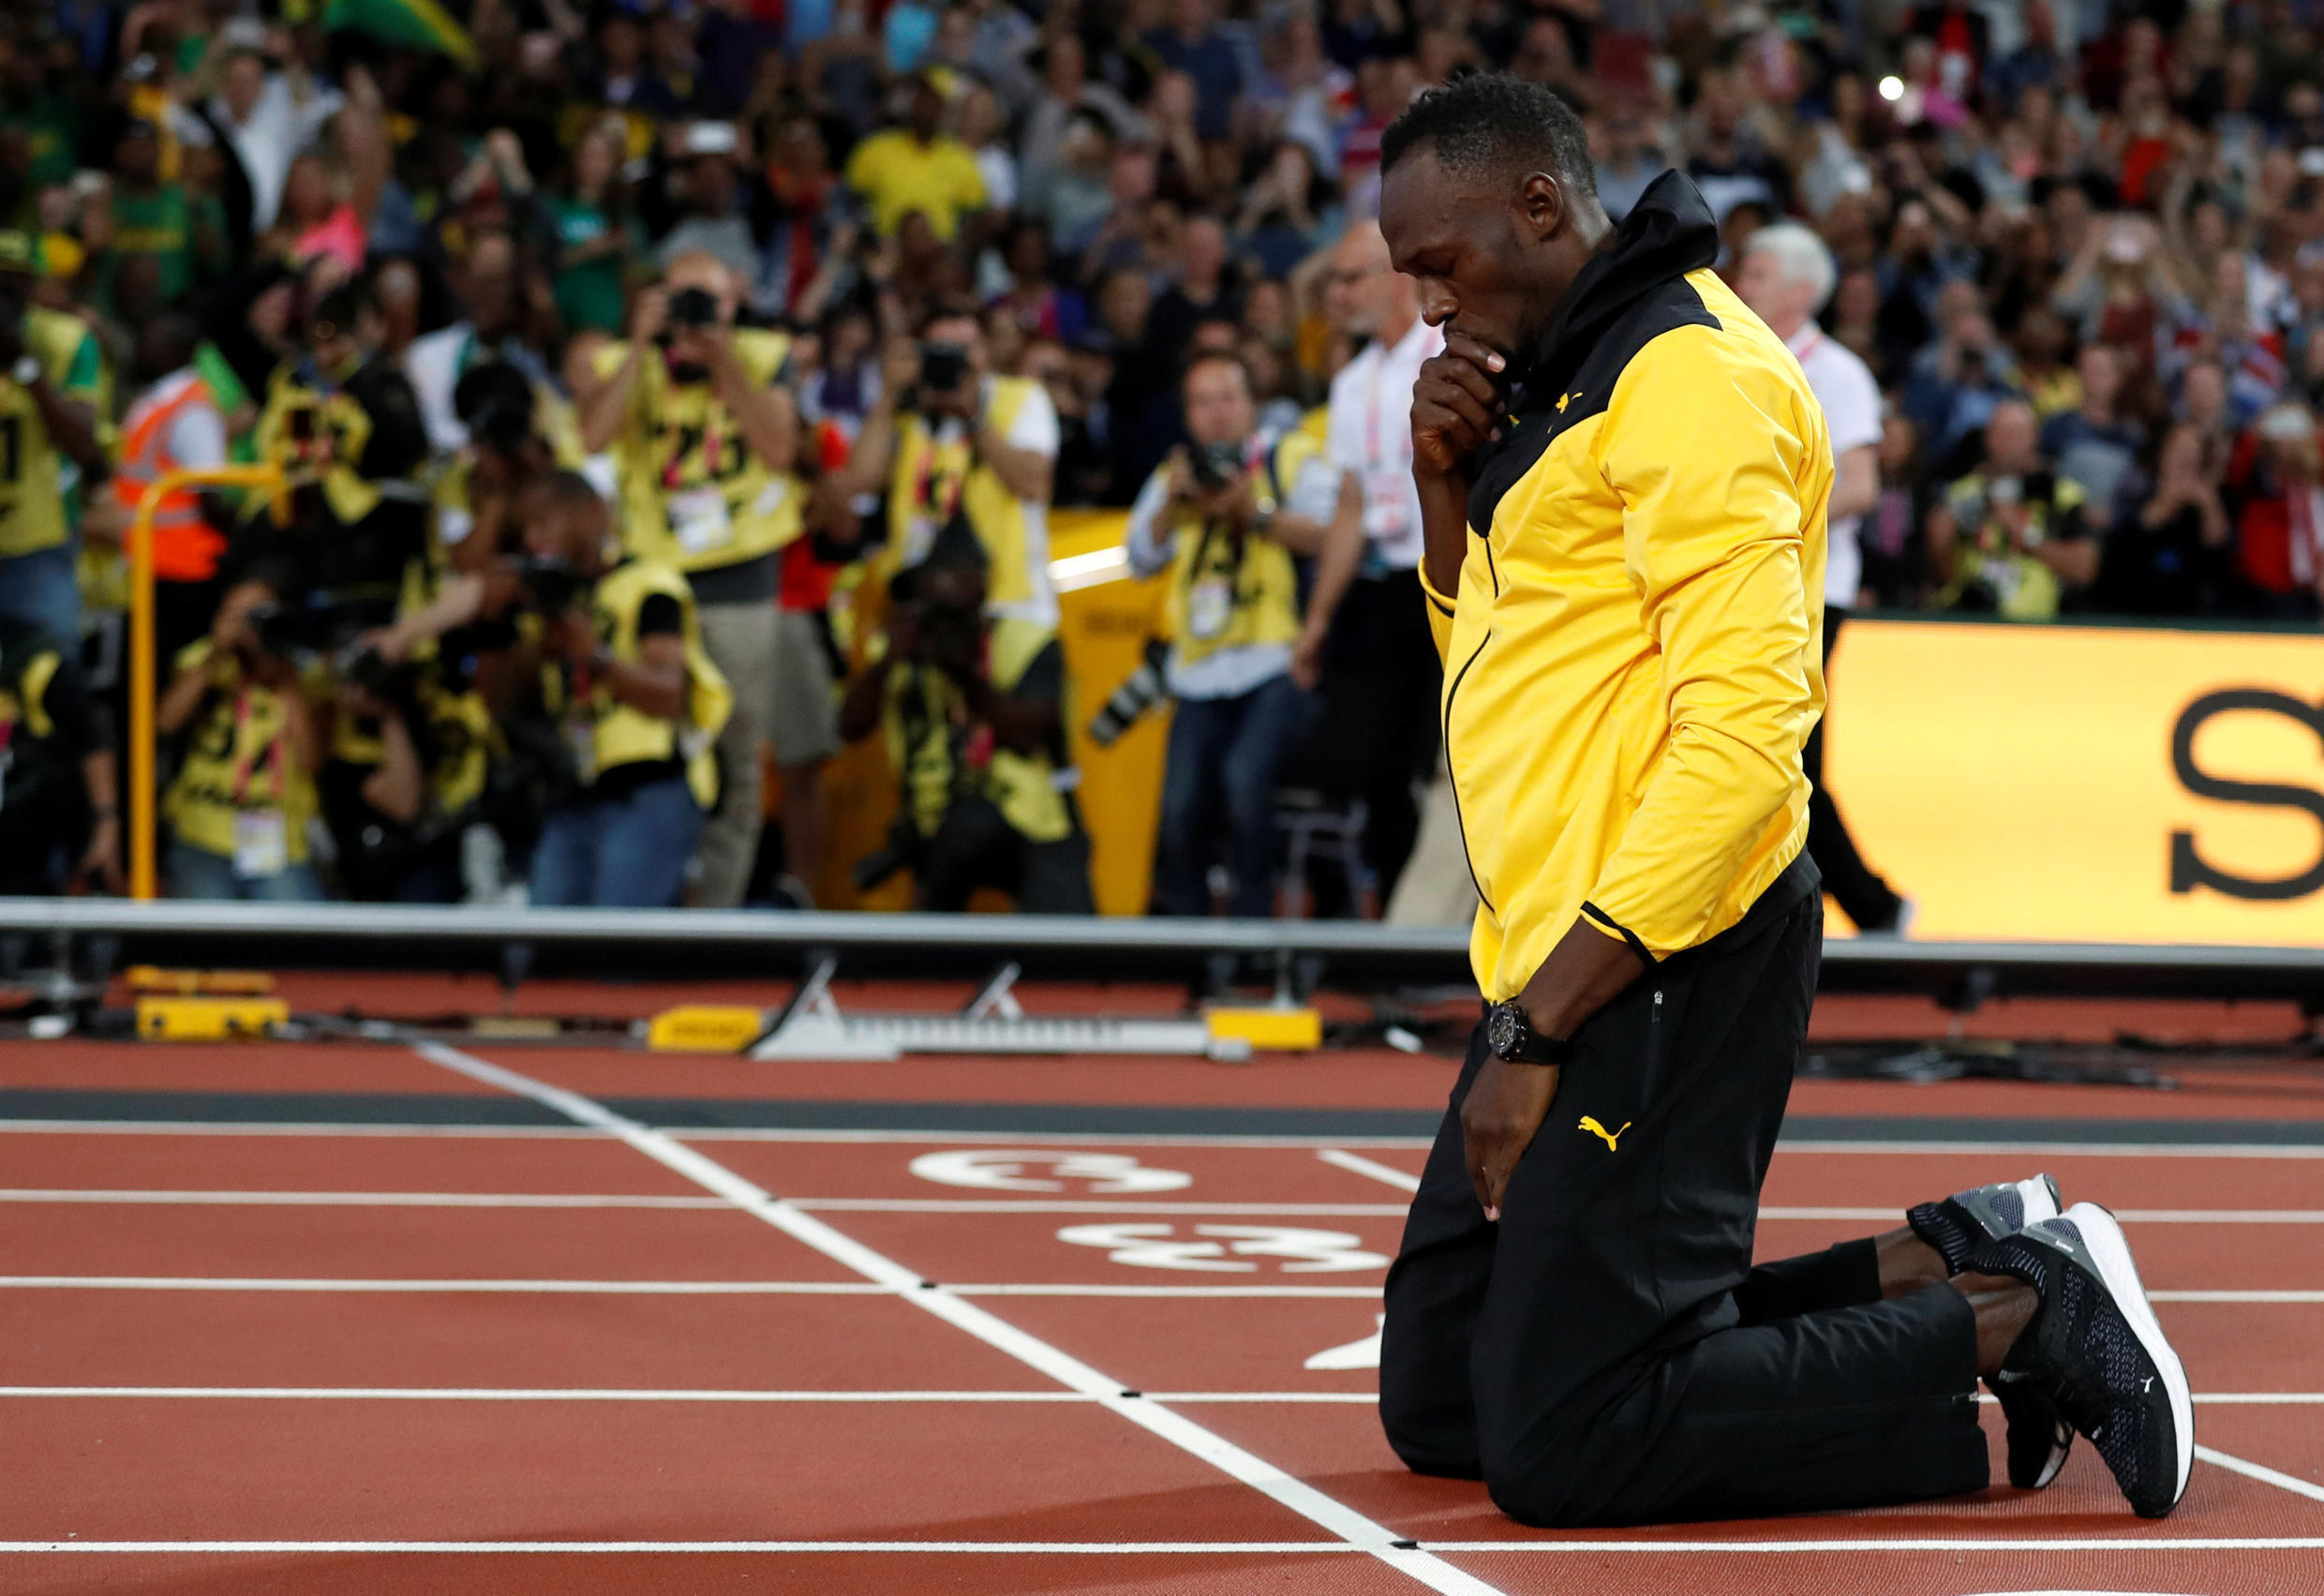 Usain Bolt paused at memorable points on the track at the Olympic stadium in London.